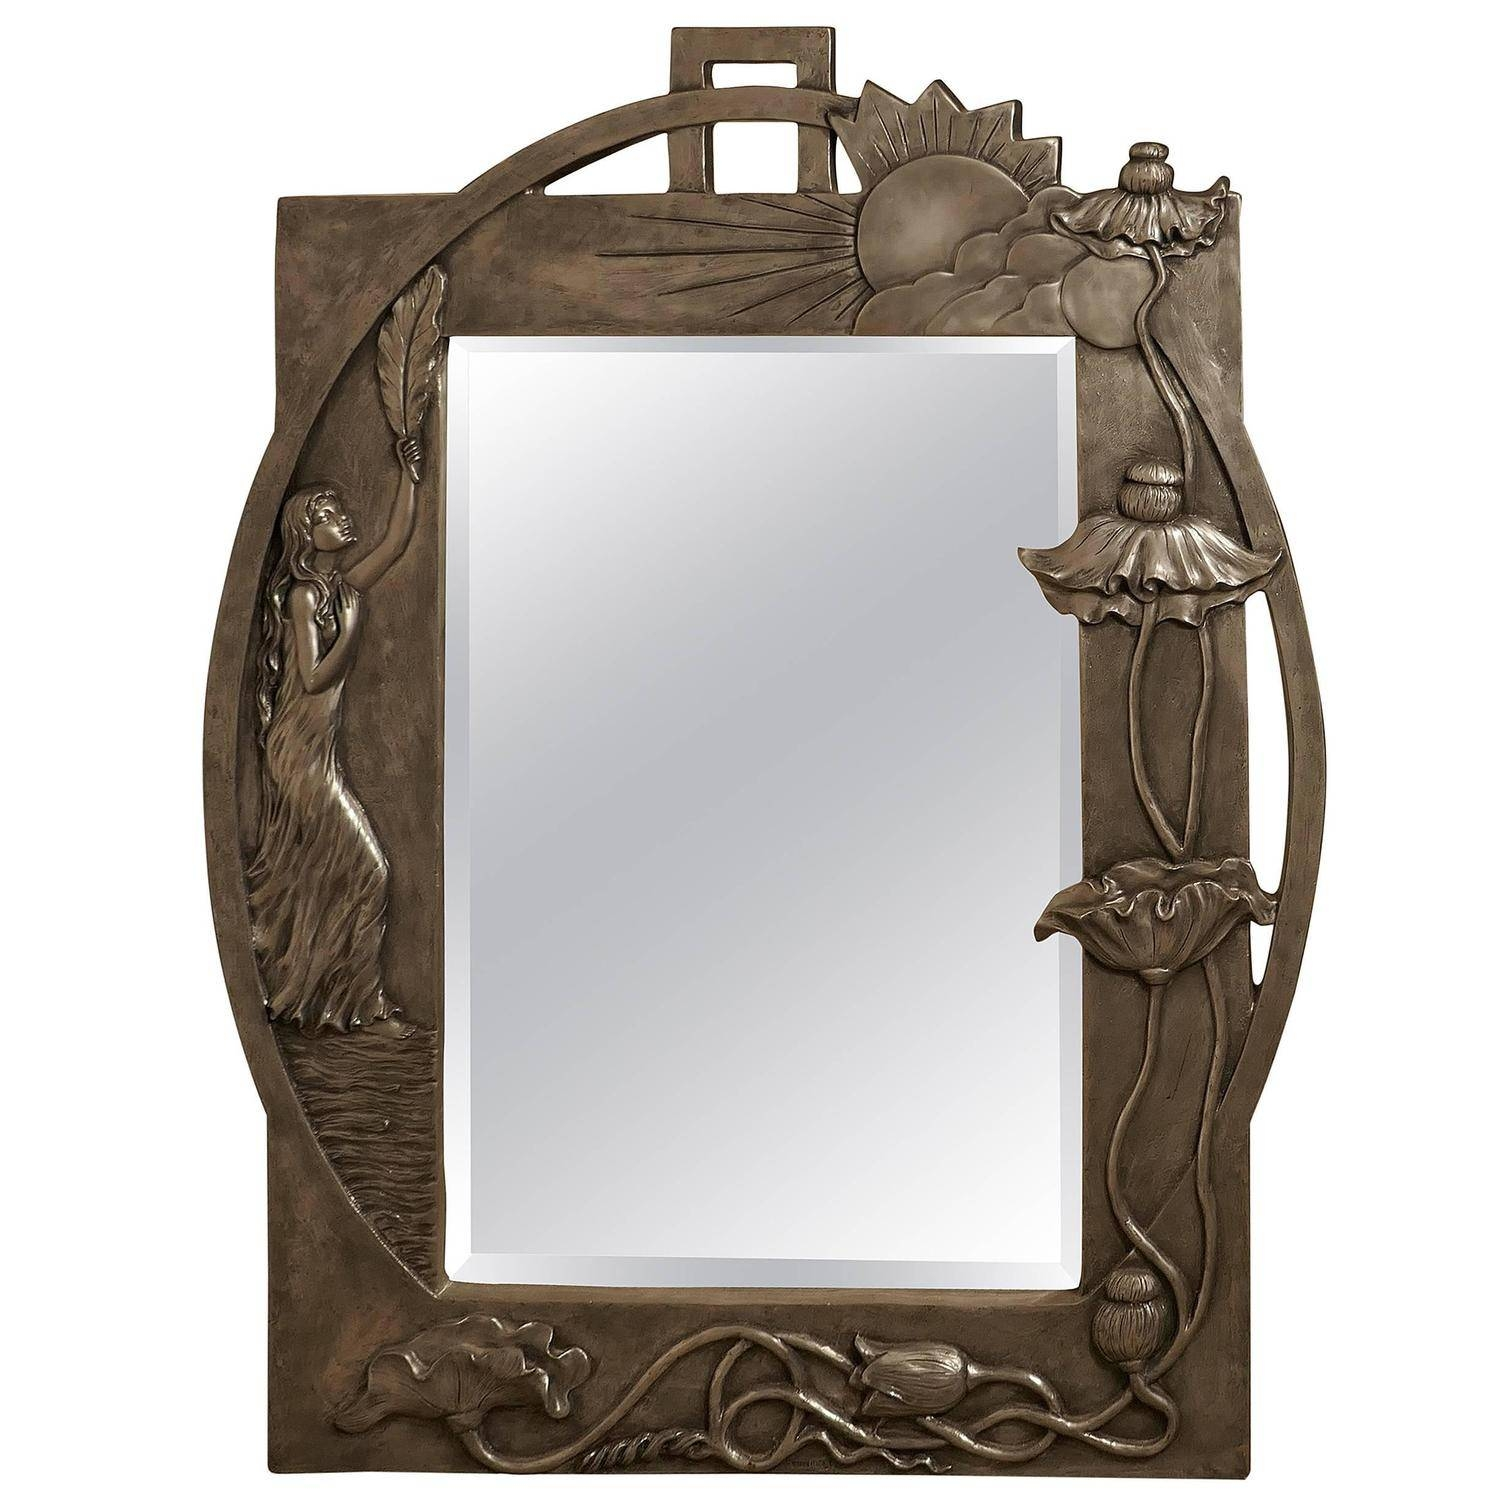 Large Art Nouveau Pewter Wall Mirror, Made In Francerosa Art pertaining to Art Nouveau Wall Mirrors (Image 23 of 25)